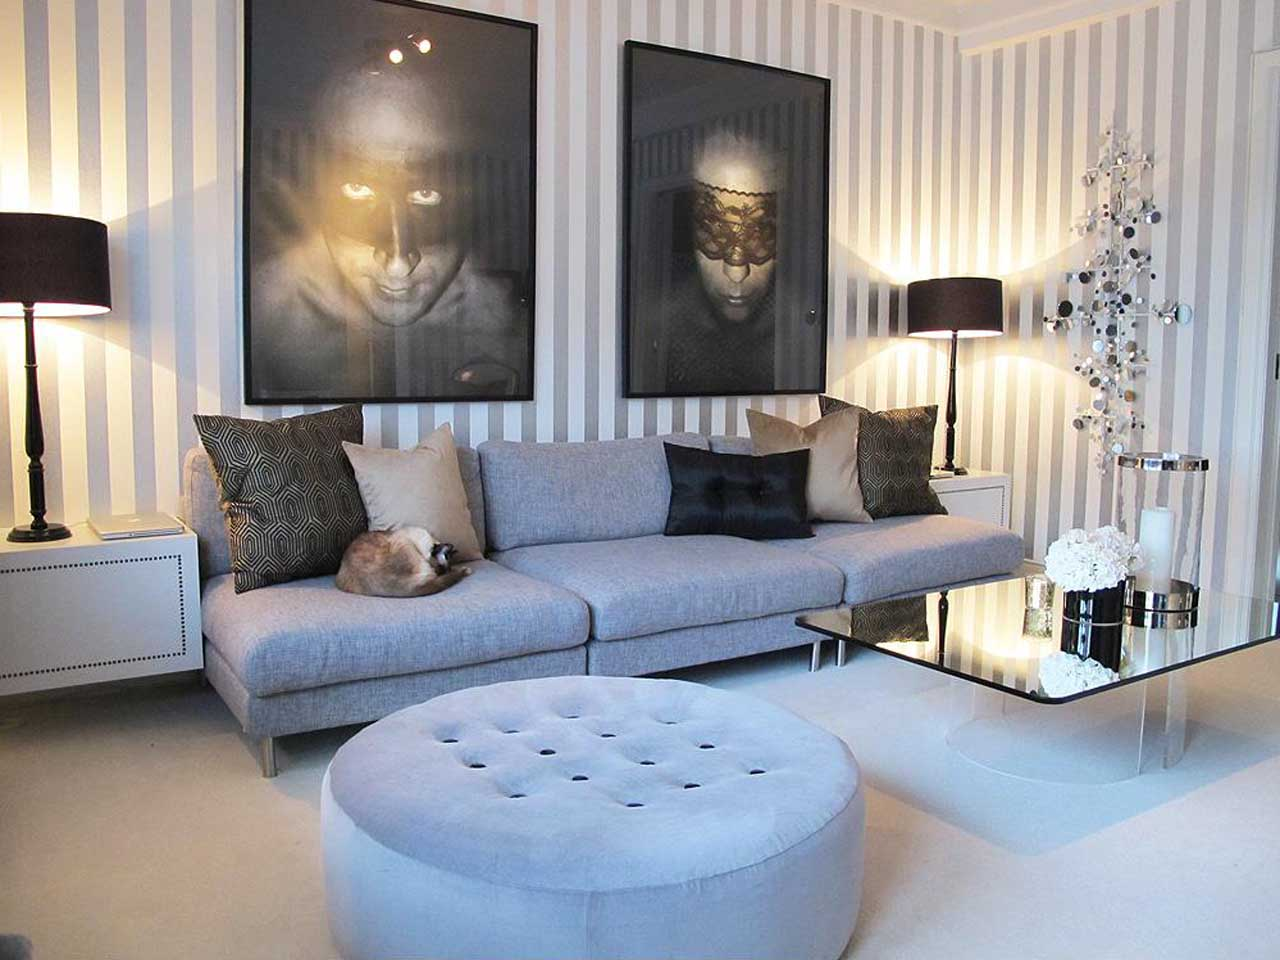 living room ideas 38 decorating tips to improve the appearance living room ideas 38 decorating tips to improve the appearance of your living area hawk haven